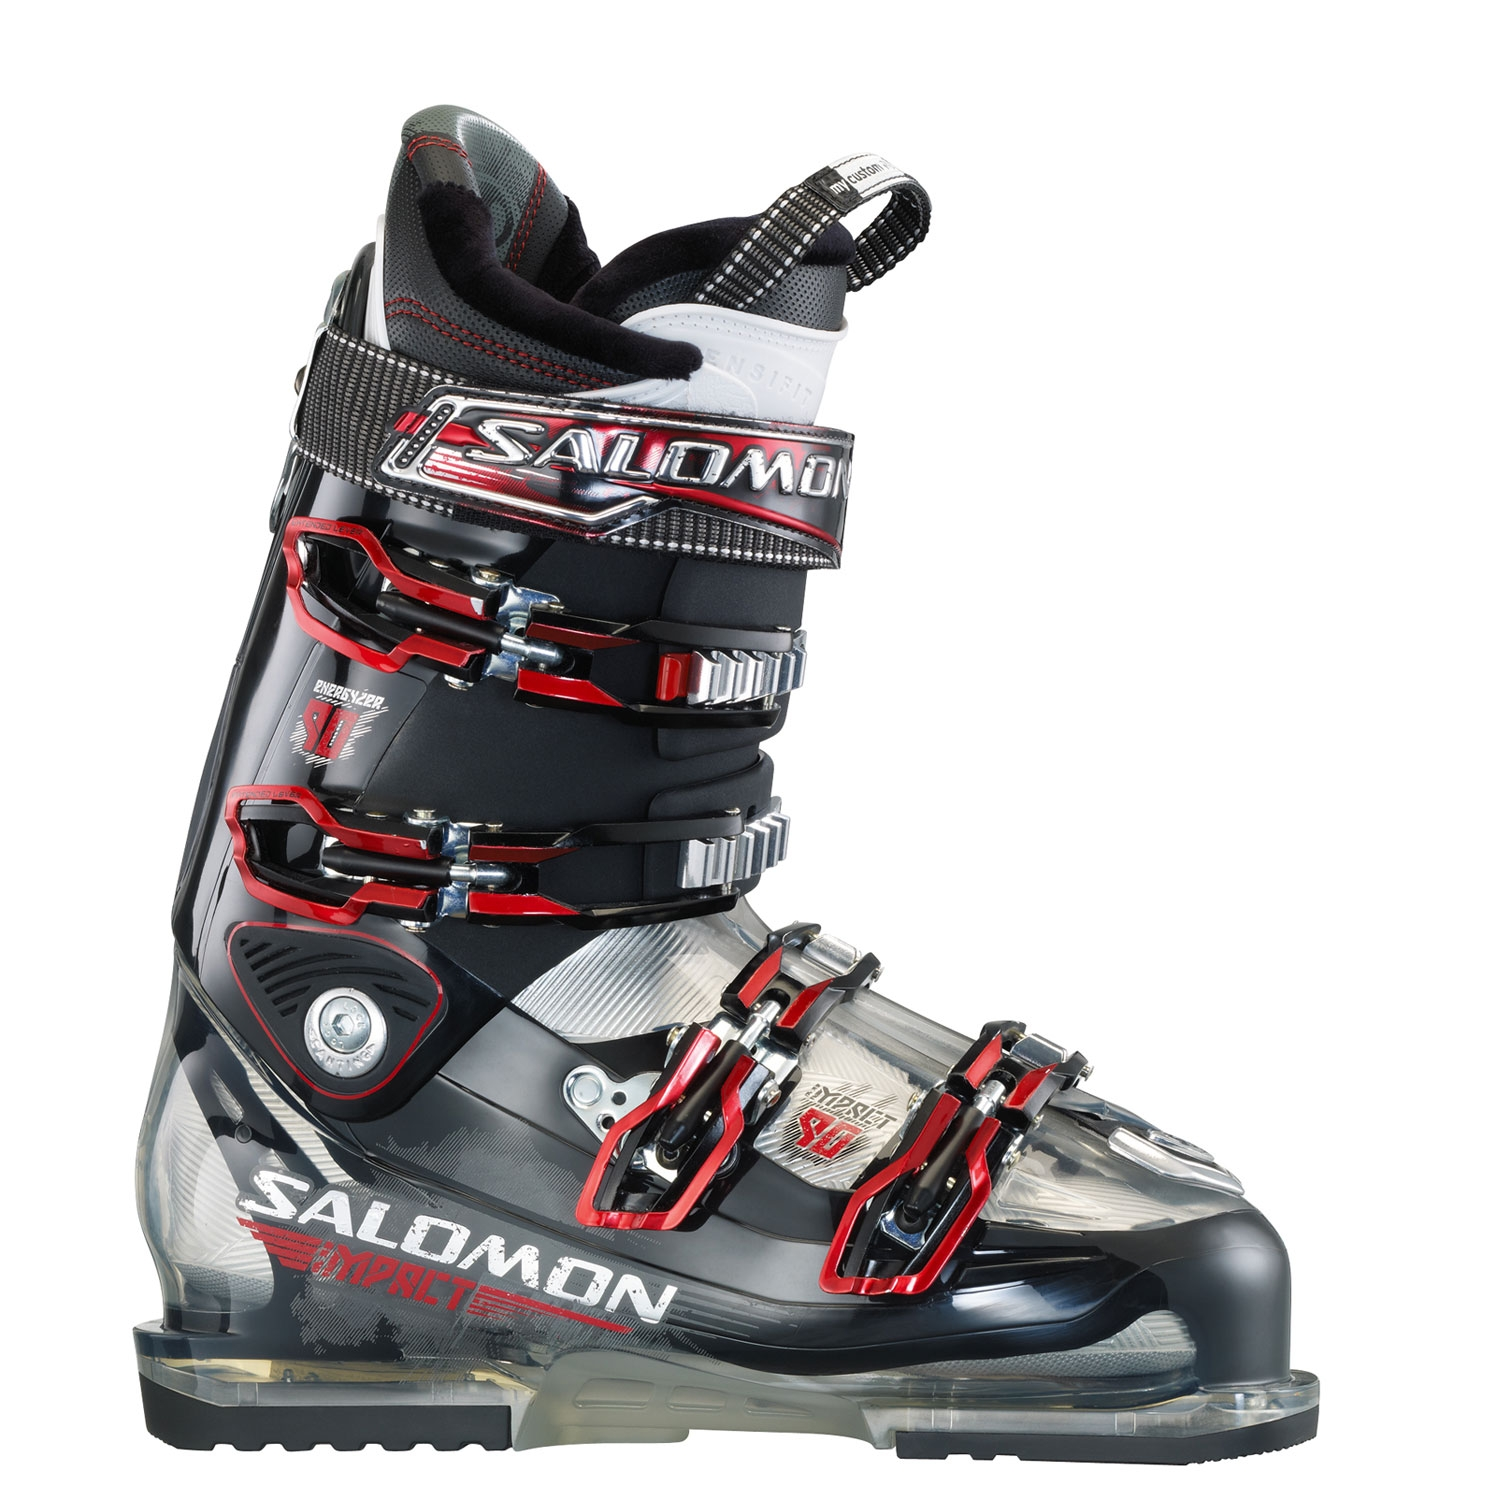 6) Buy your own boots& but maybe not skis